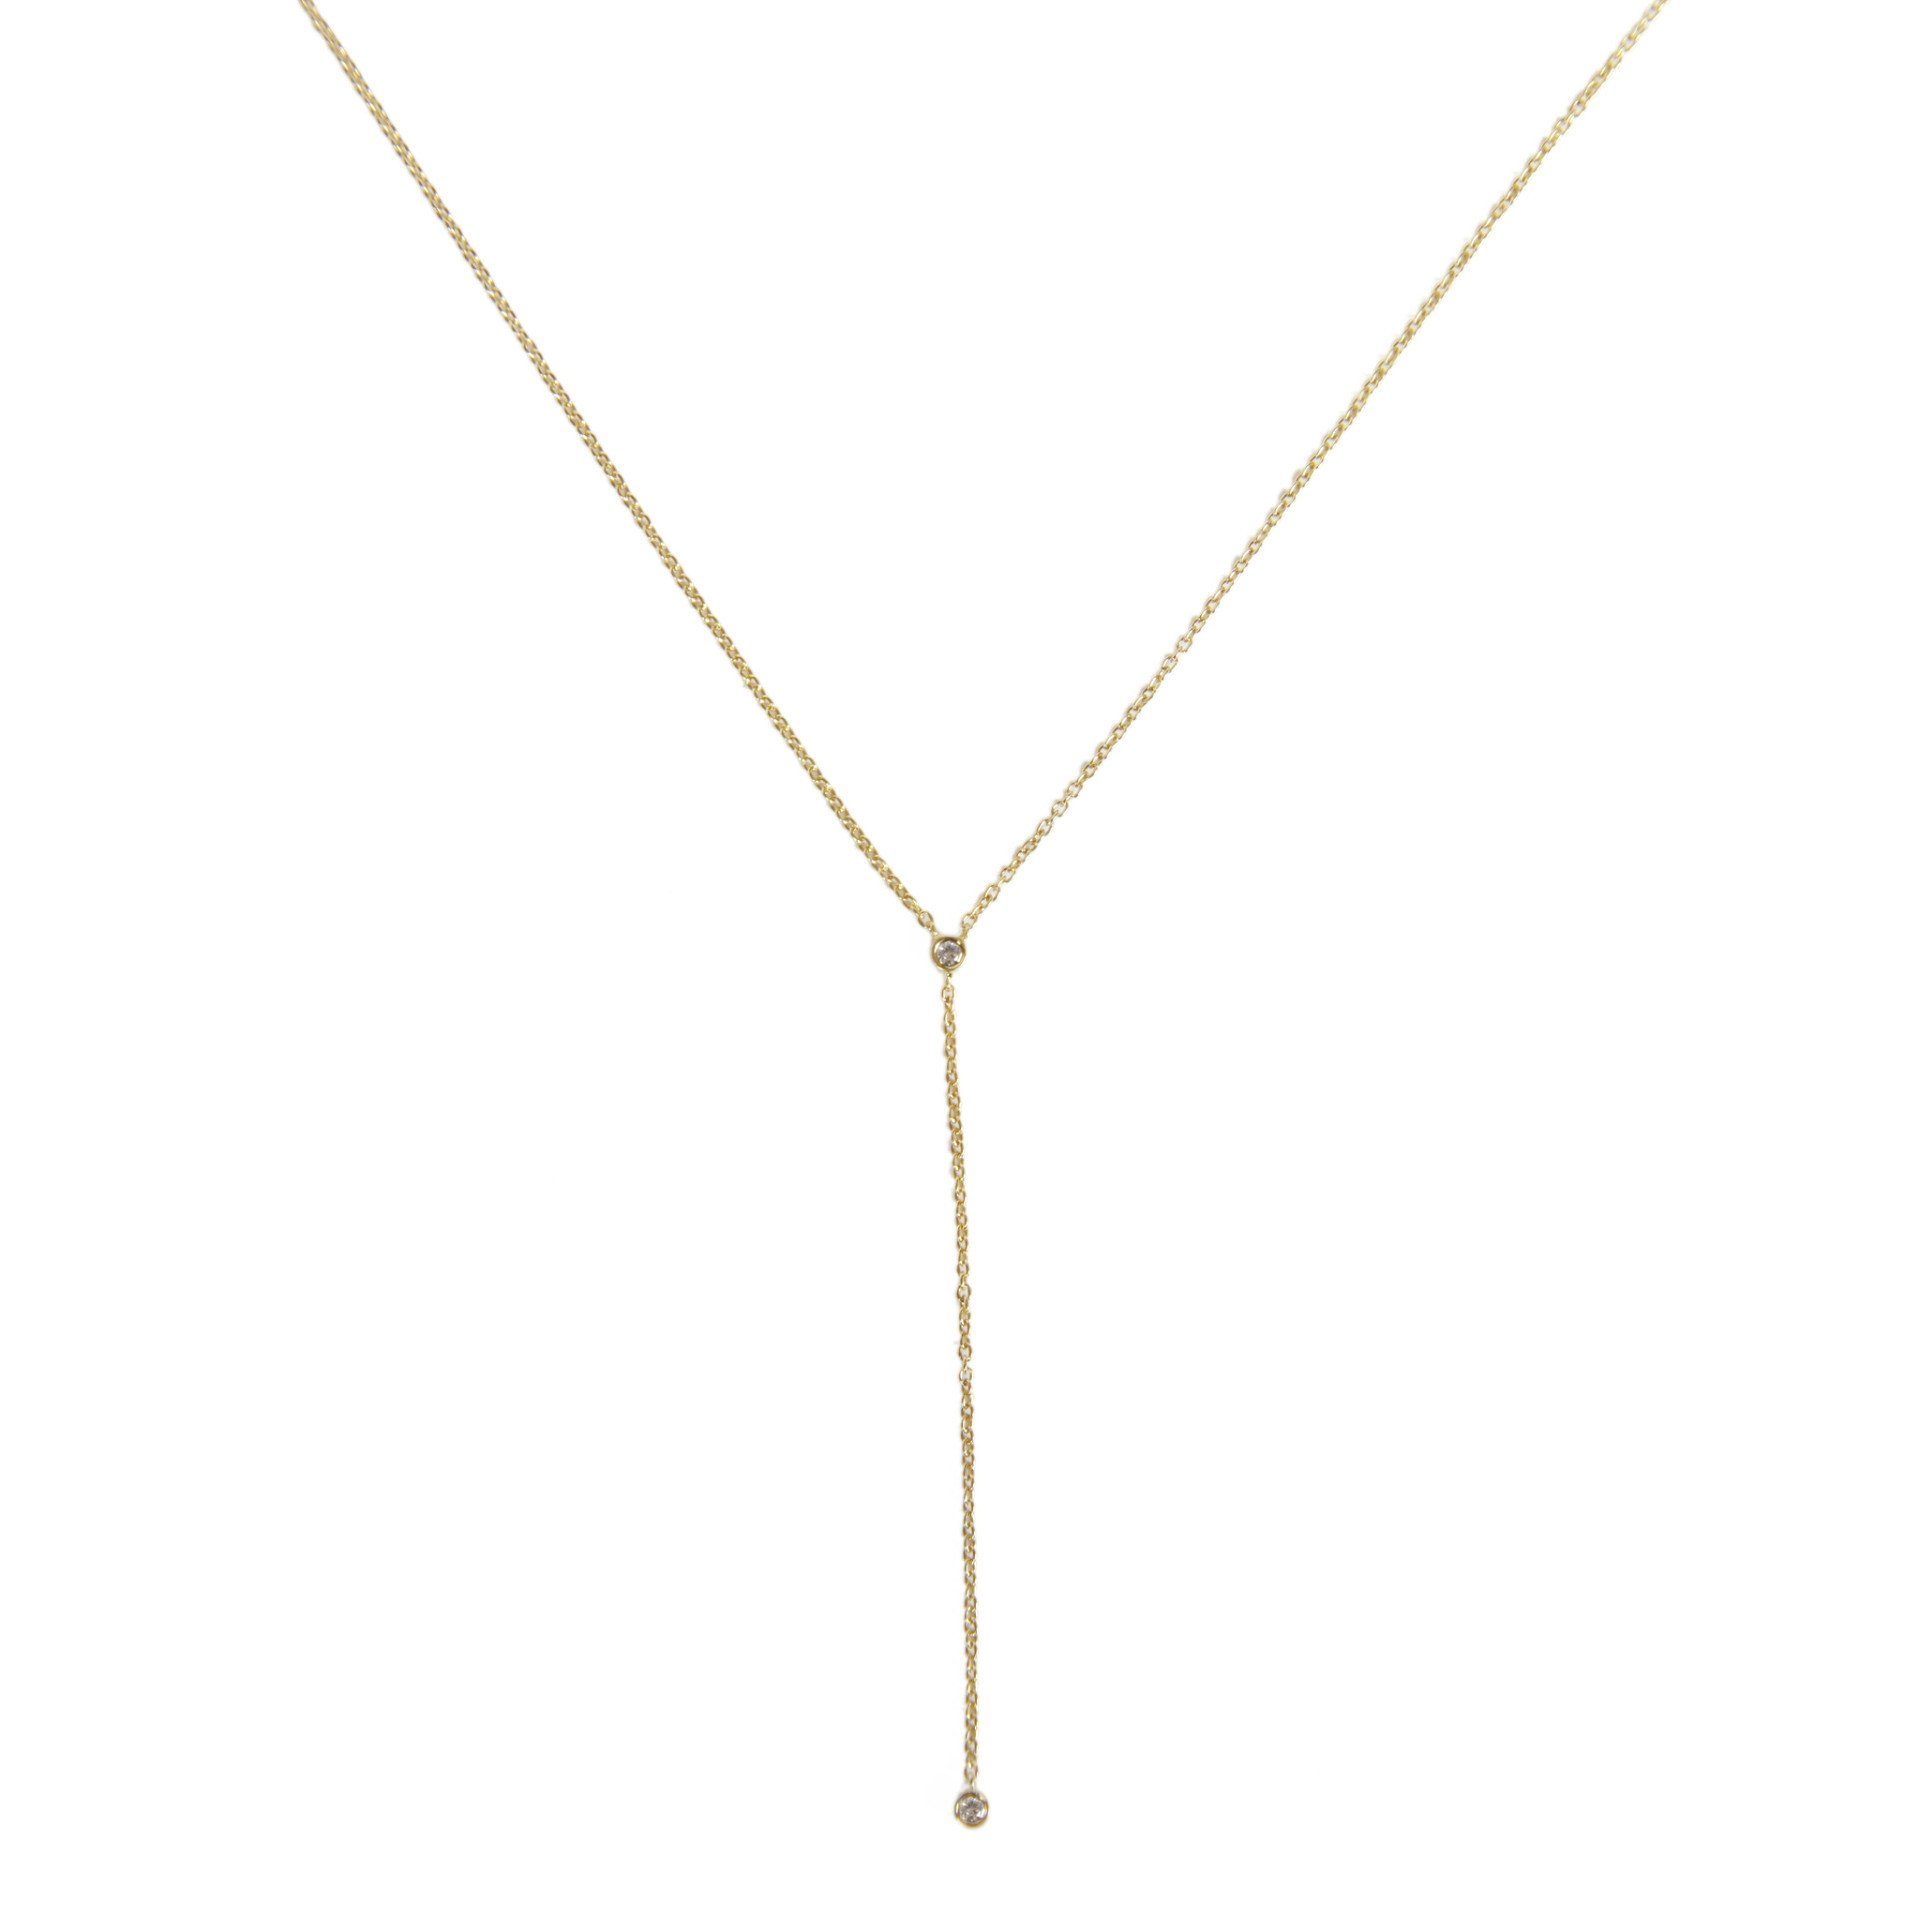 necklace - diamond lariat necklace oxlbmqp